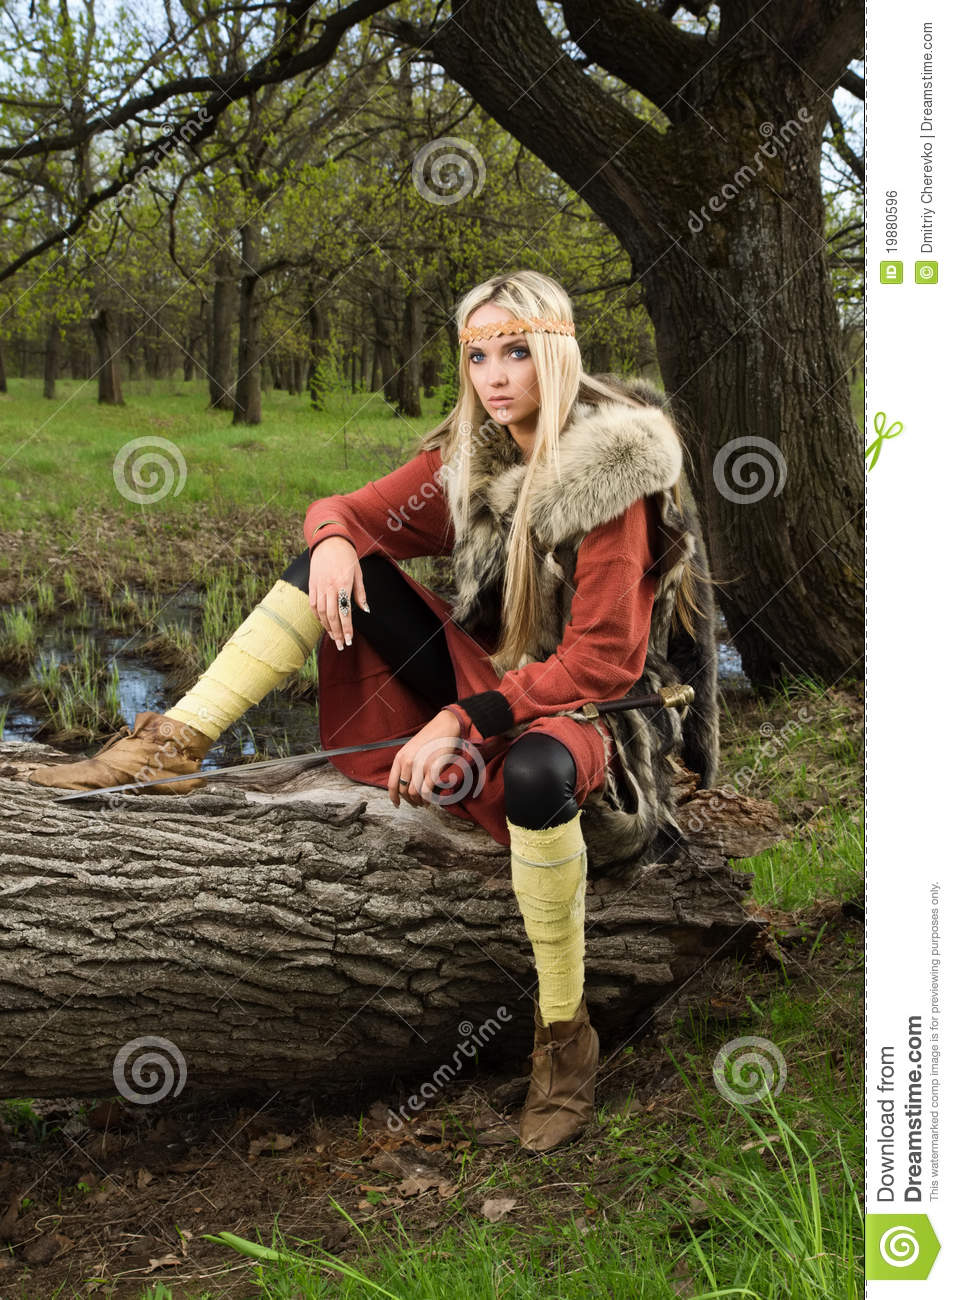 Viking Girl With Sword In A Wood Stock Photo Image 19880596